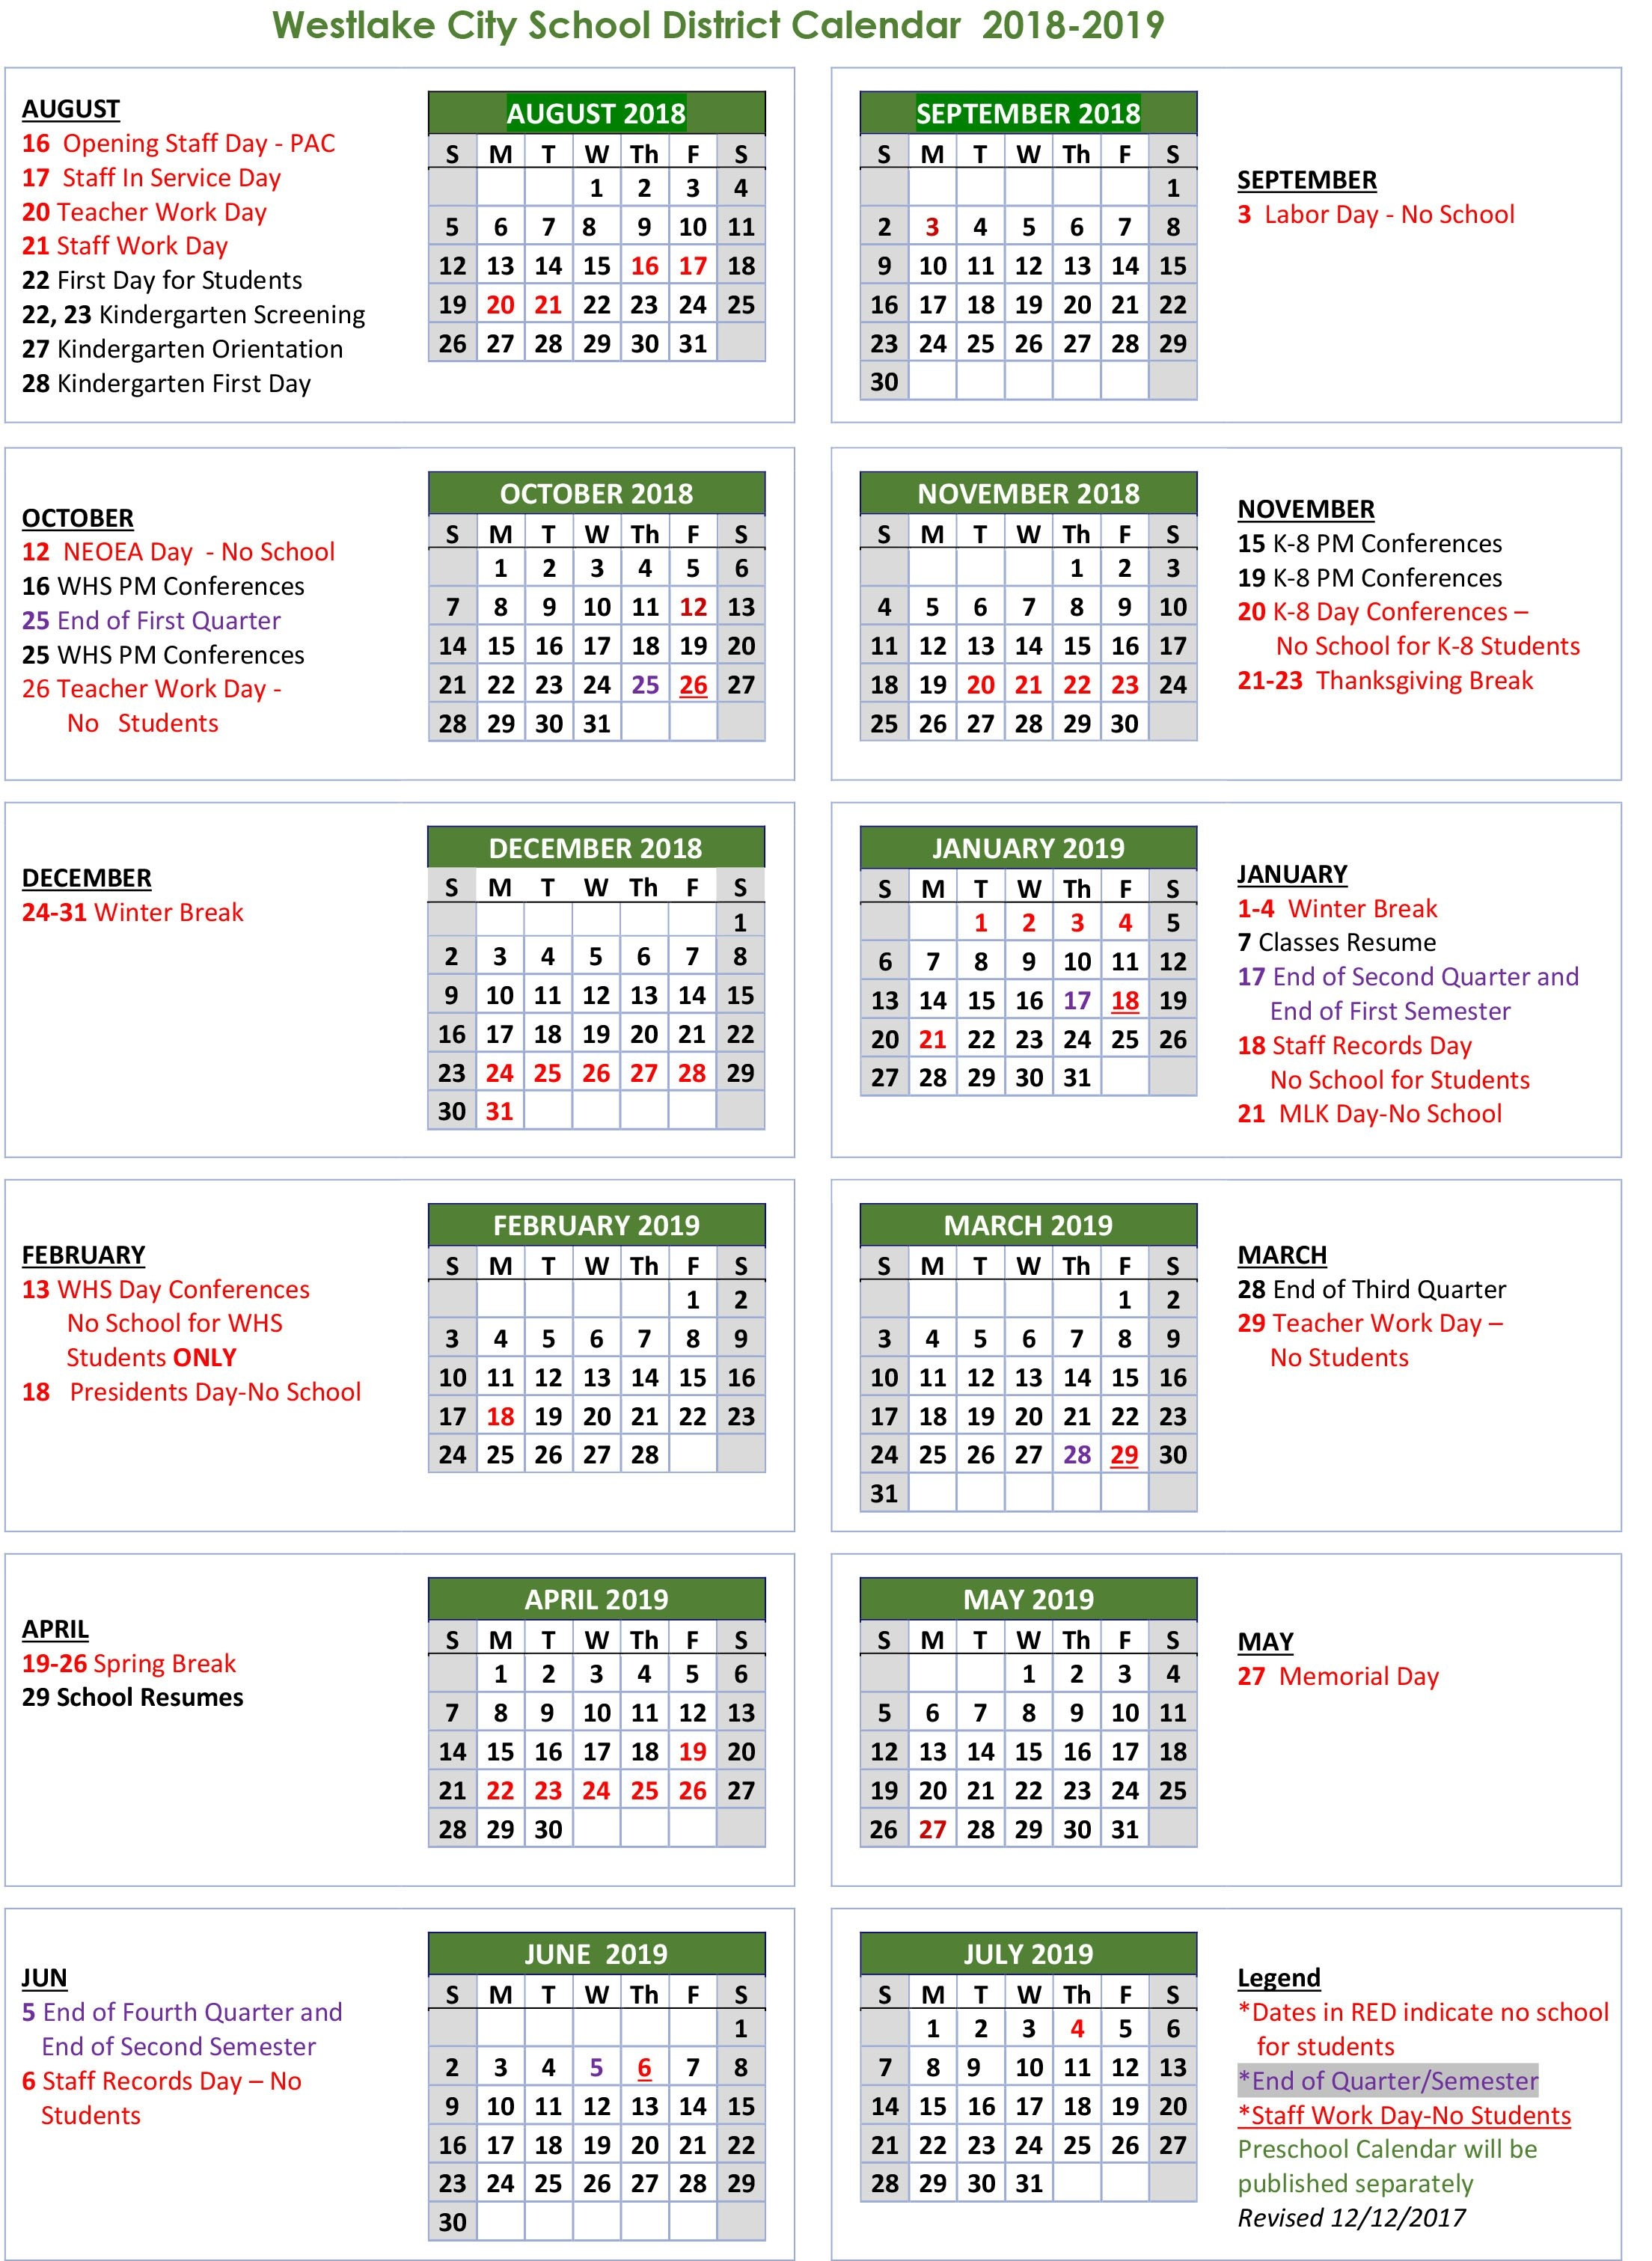 School Calendar - Westlake City School District Unit 5 Calendar 2019